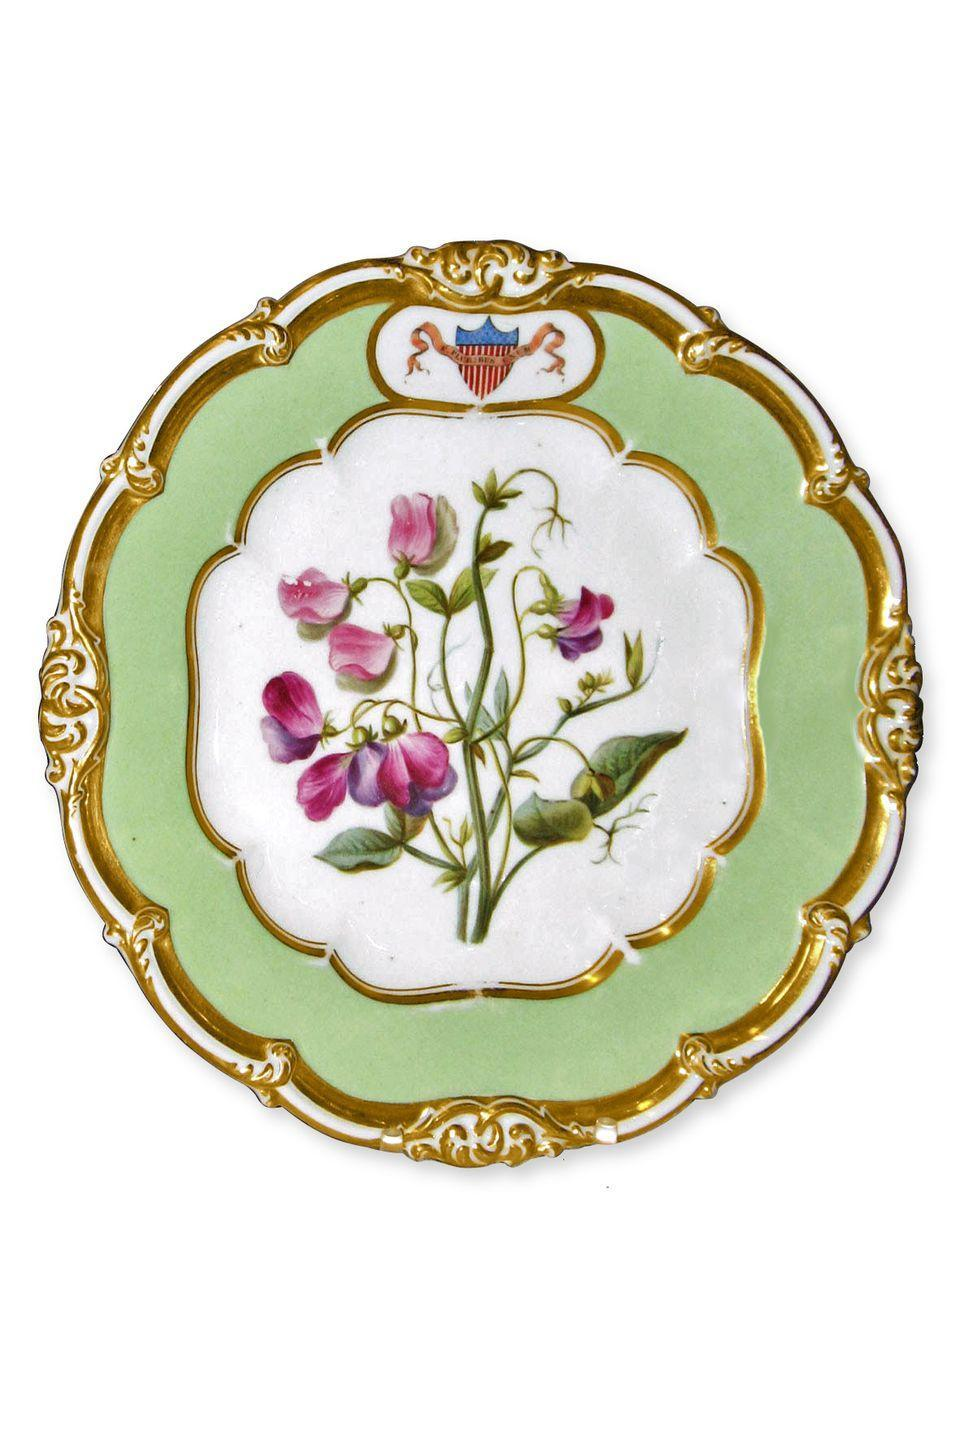 <p><strong>What it was worth (2009):</strong> $25,000</p><p><strong>What it's worth now:</strong> $5,000</p><p>This China plate from James Polk's presidency is now worth just a fifth of its original appraisal.</p>